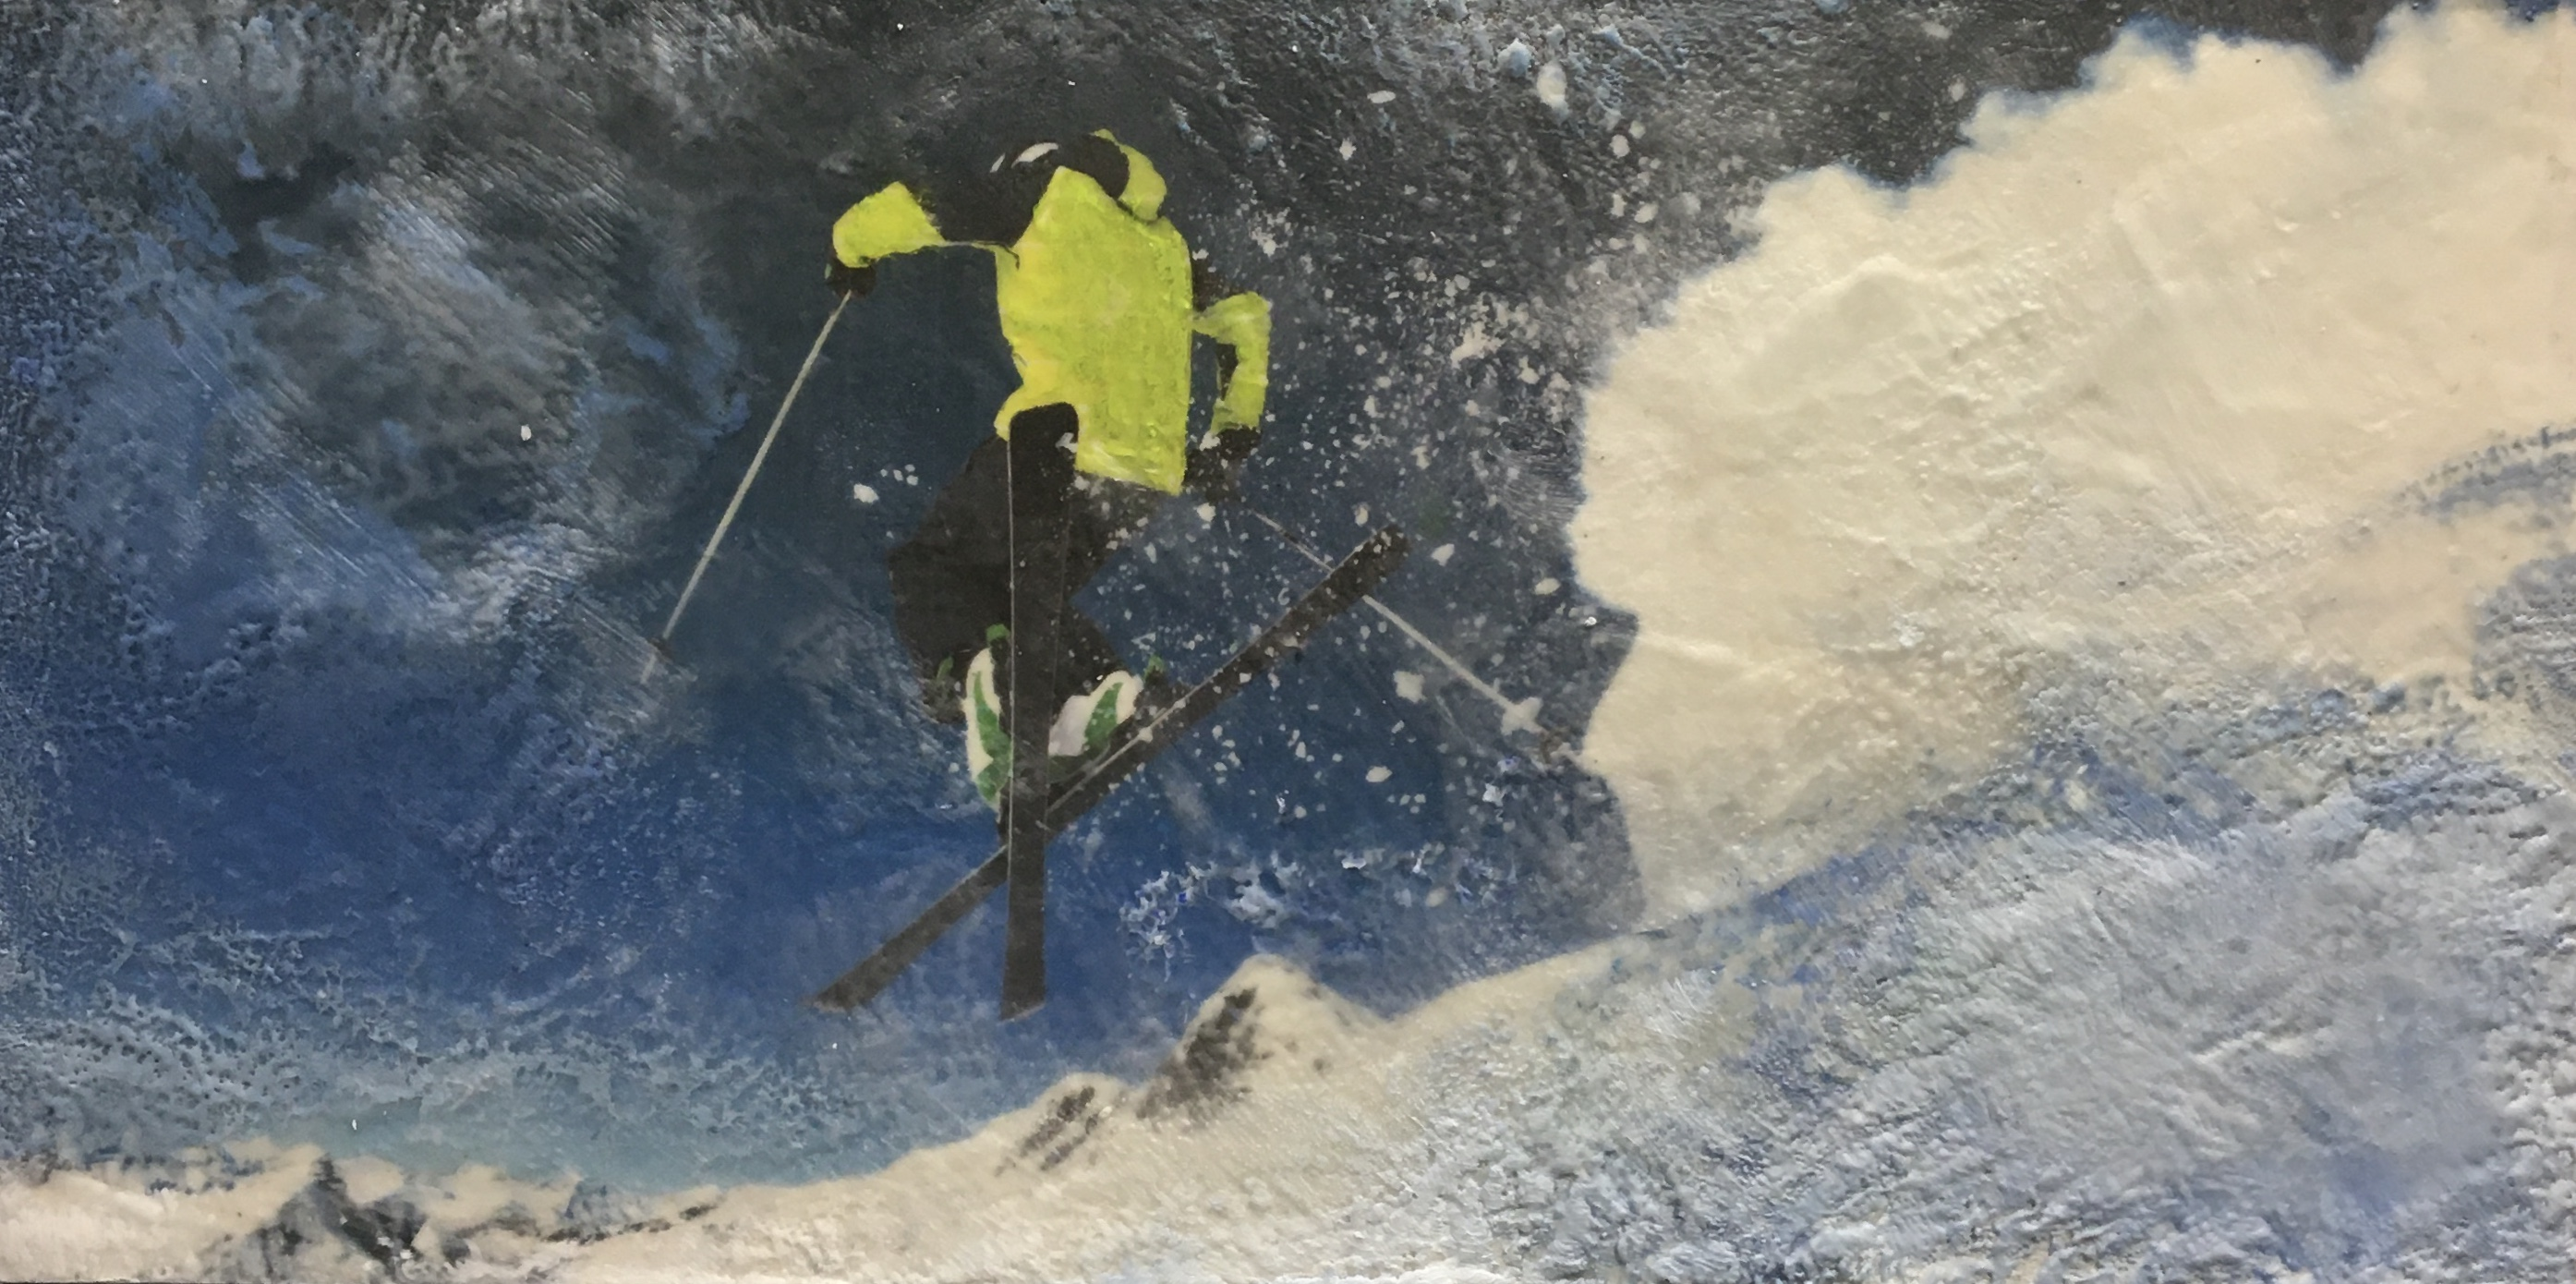 Deep Powder 2, encaustic ski painting by Lee Anne LaForge | Effusion Art Gallery + Cast Glass Studio, Invermere BC